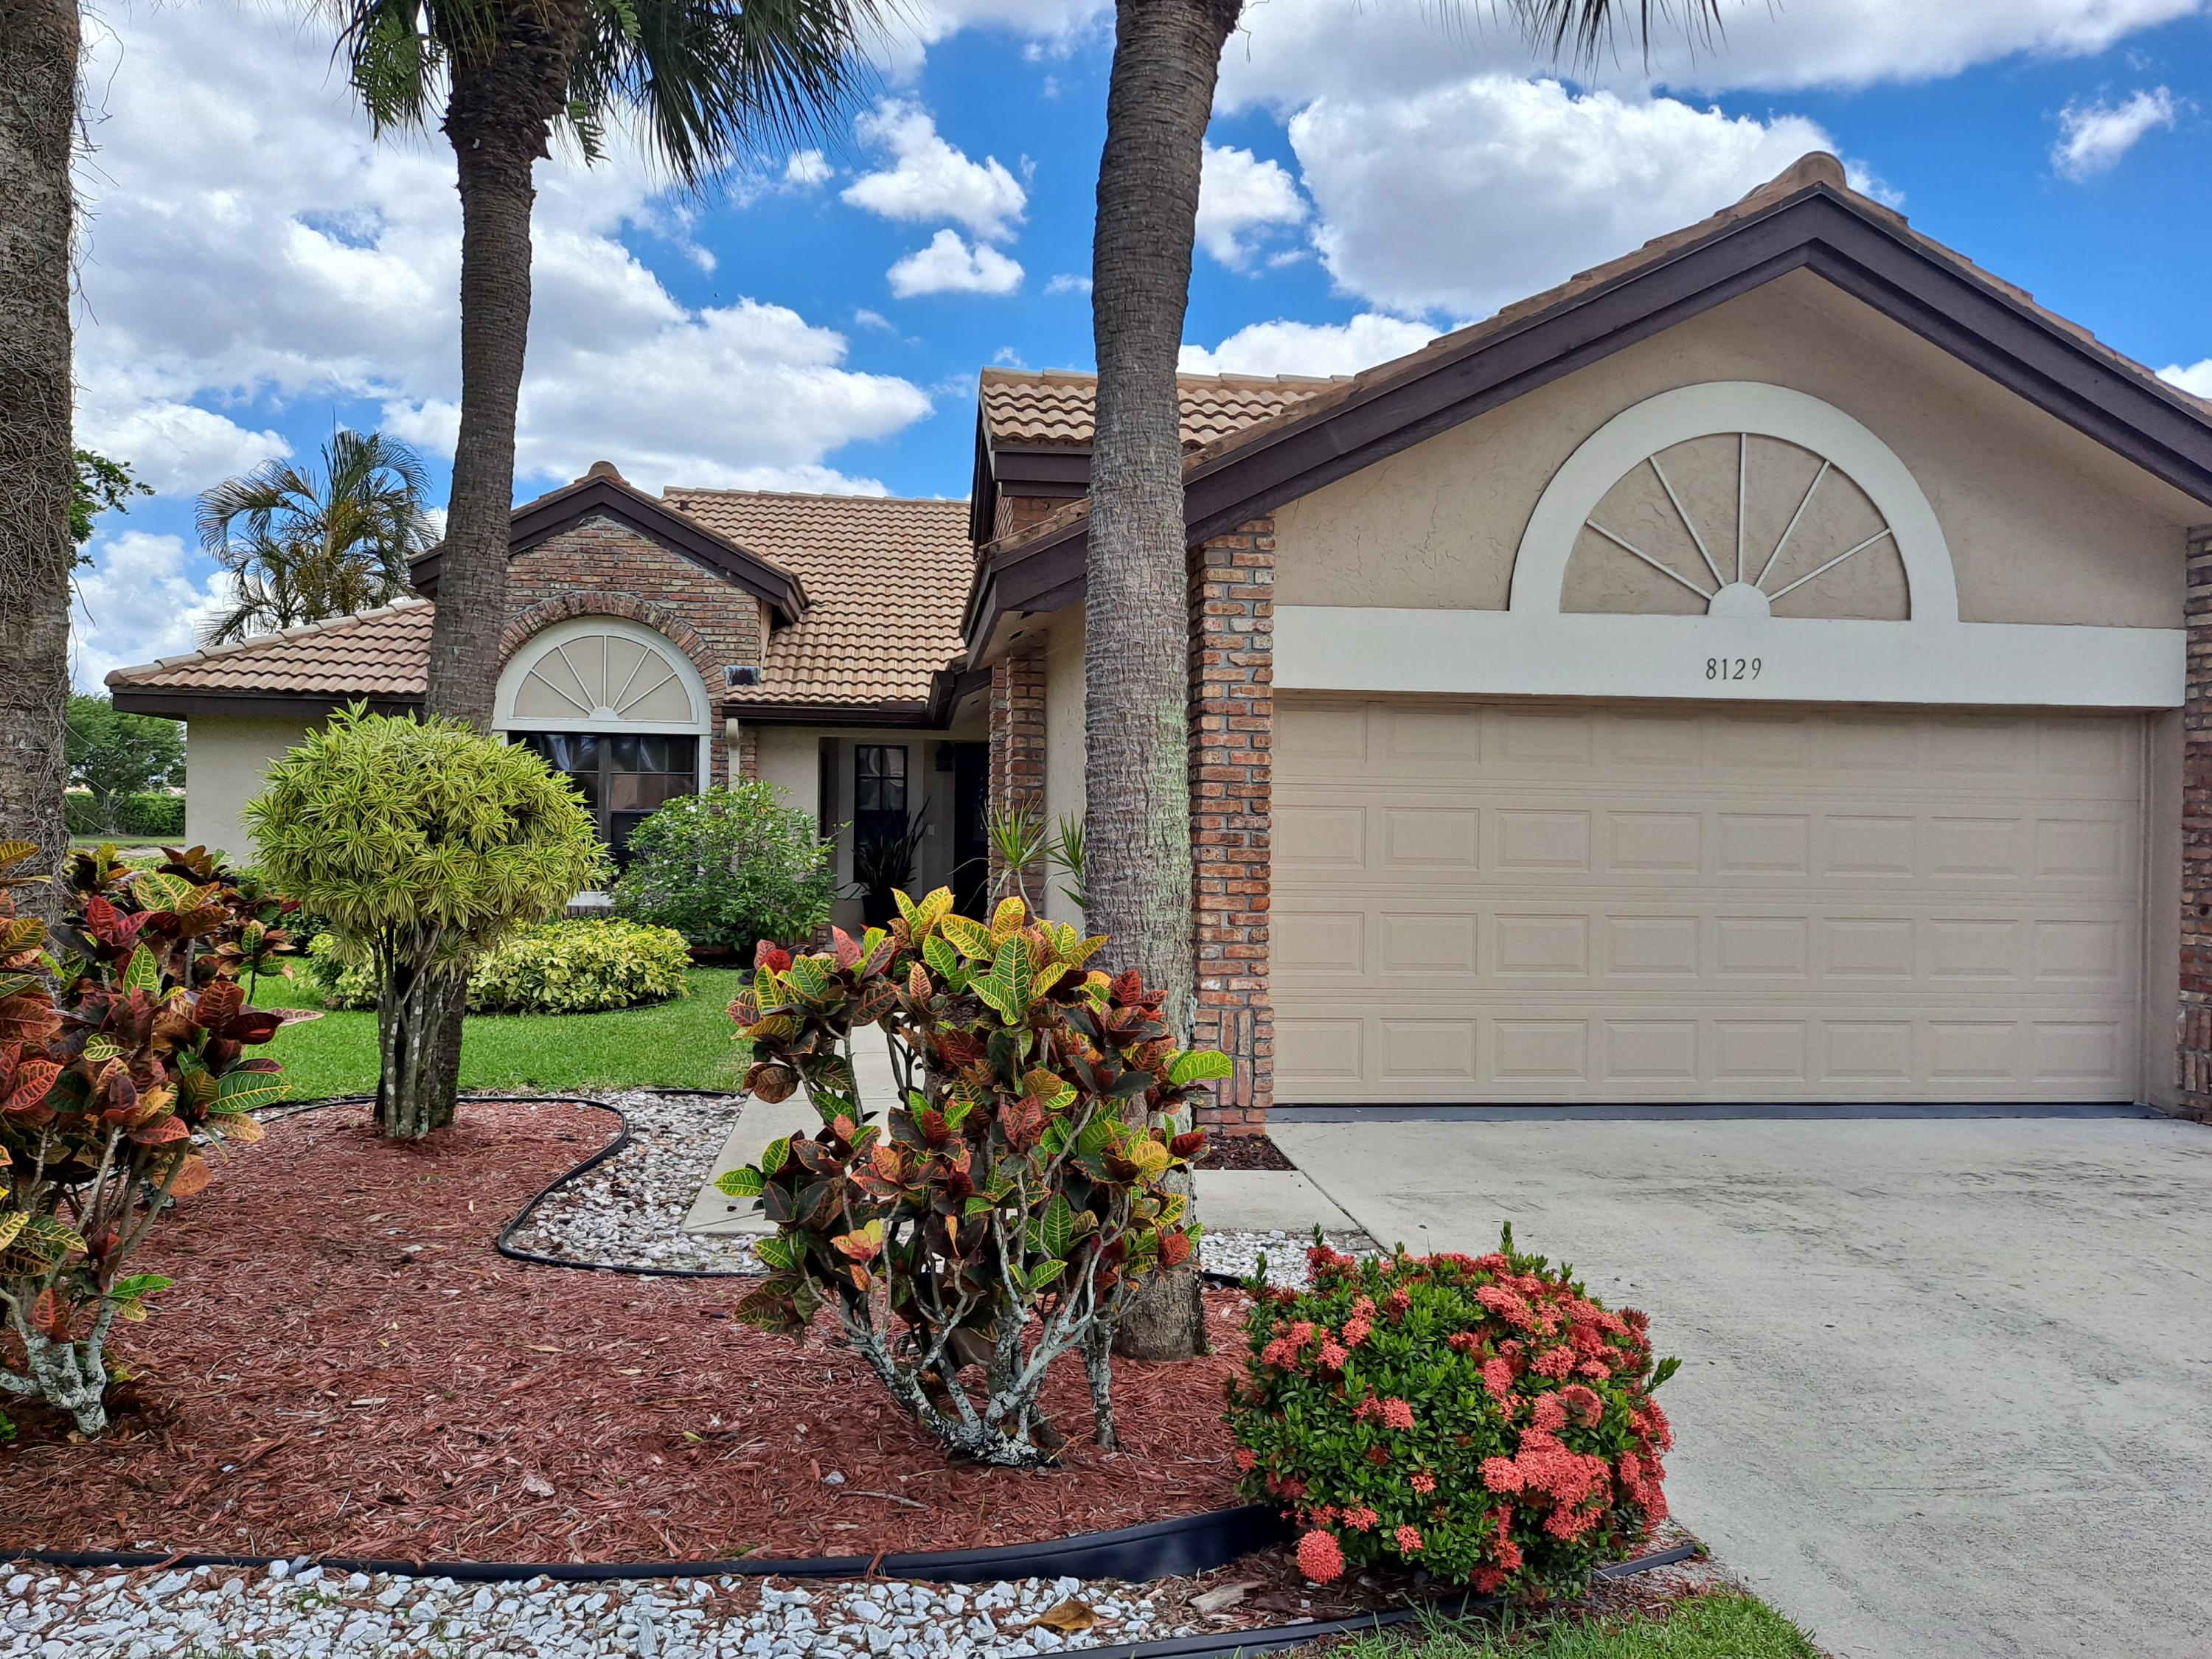 8129  Mimosa Place  For Sale 10720053, FL